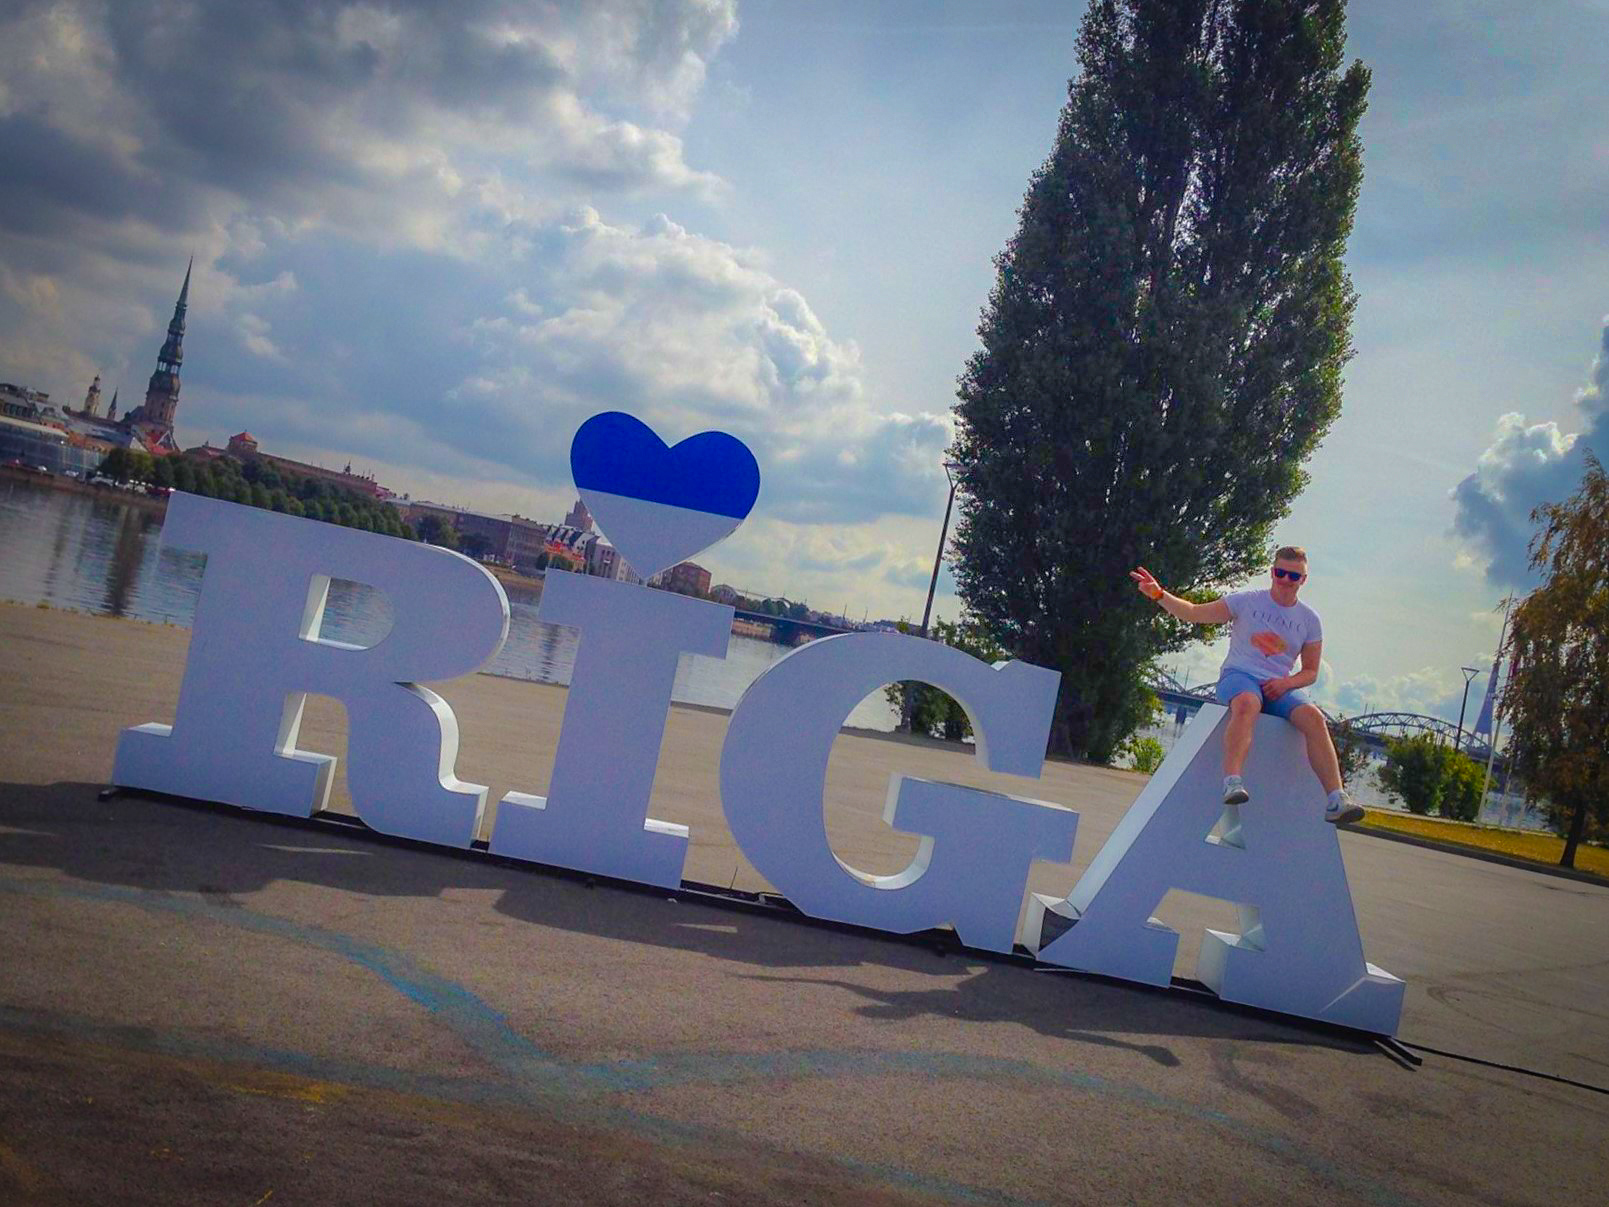 Make sure to stop by the Riga sign to get your next Instagram.